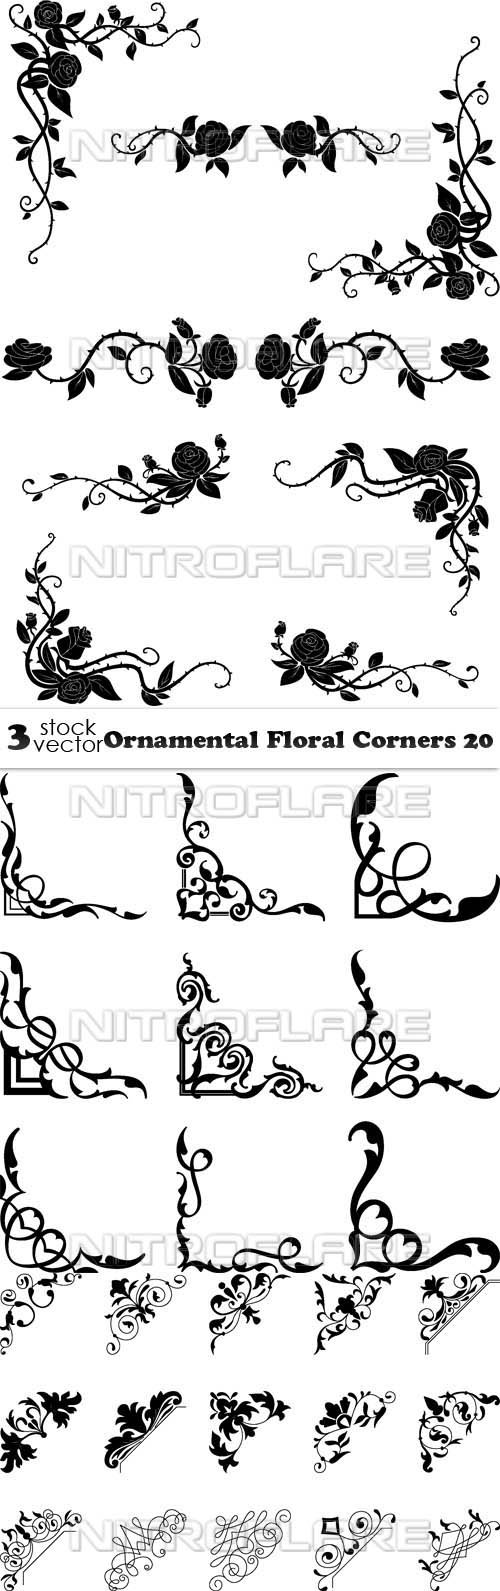 Vectors - Ornamental Floral Corners 20